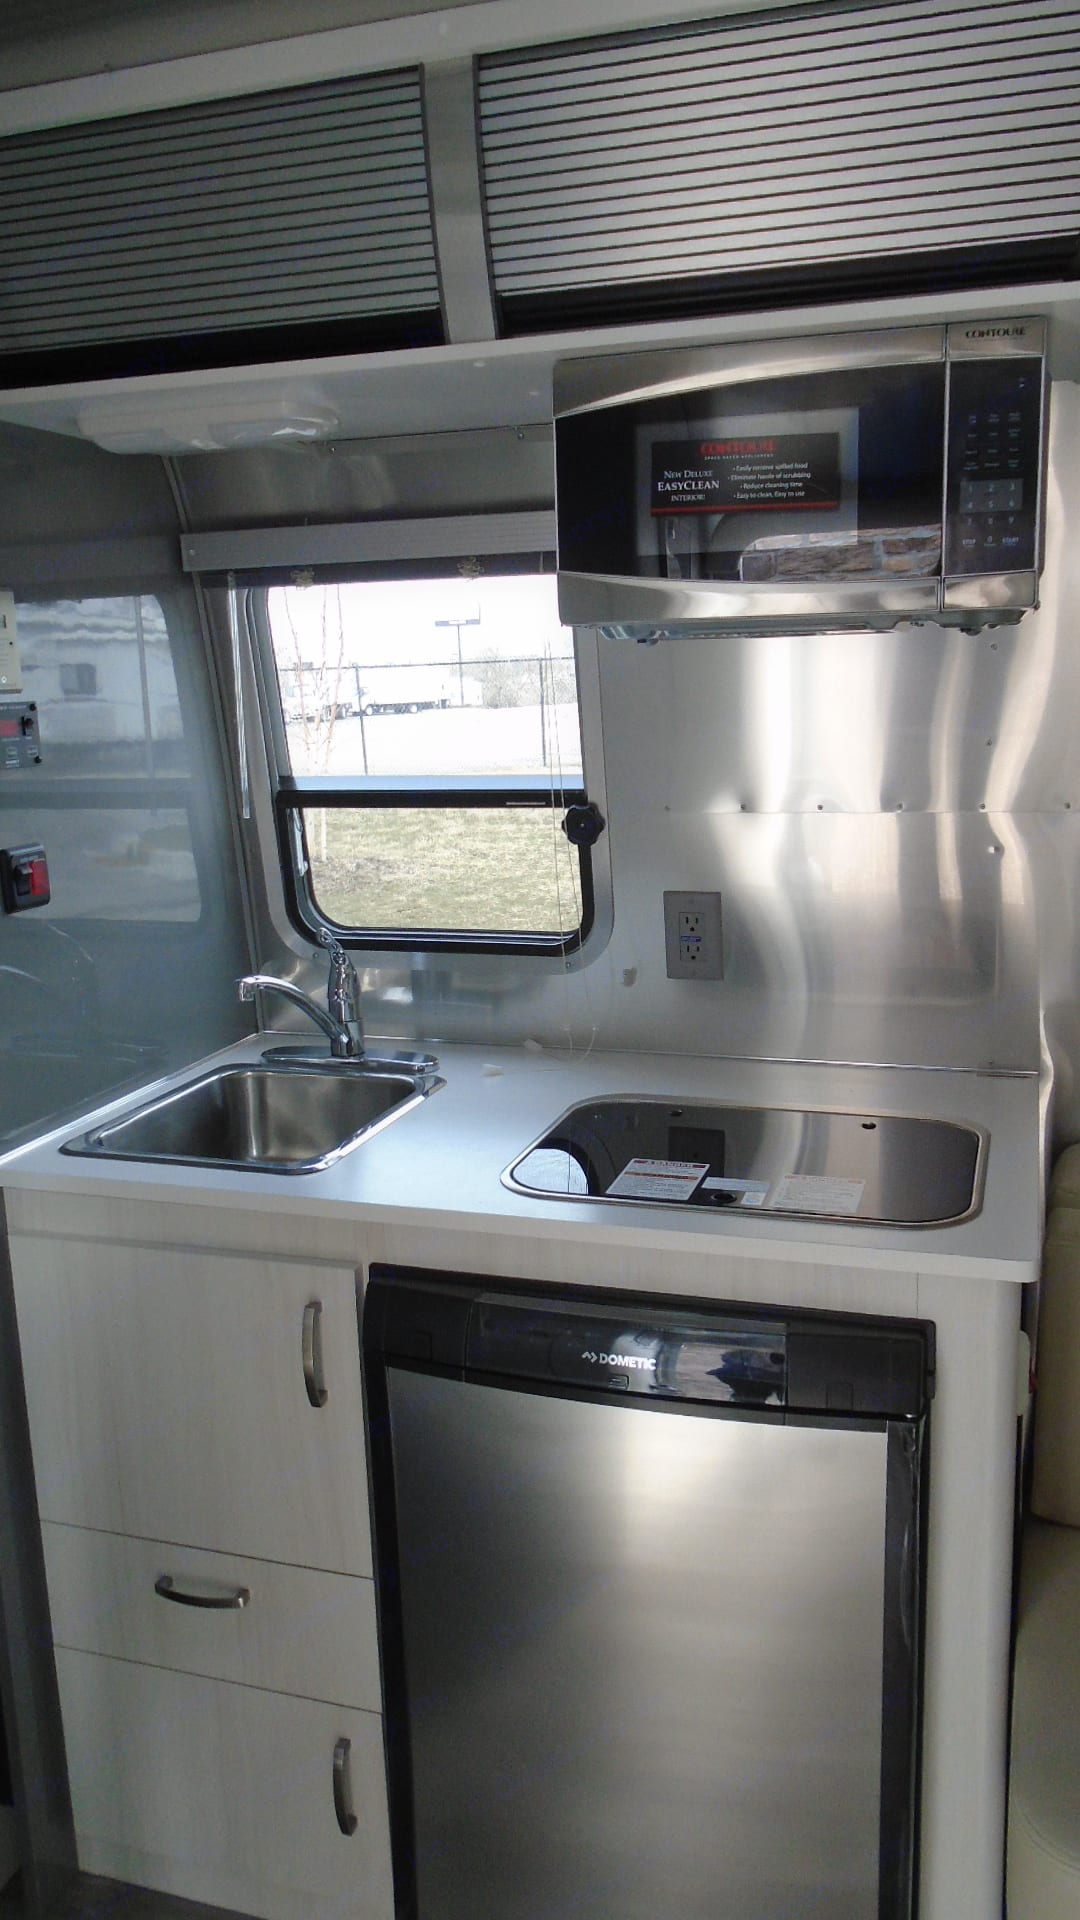 2-burned gas range with tempered glass cover next to the kitchen sink.. Airstream Sport 2019